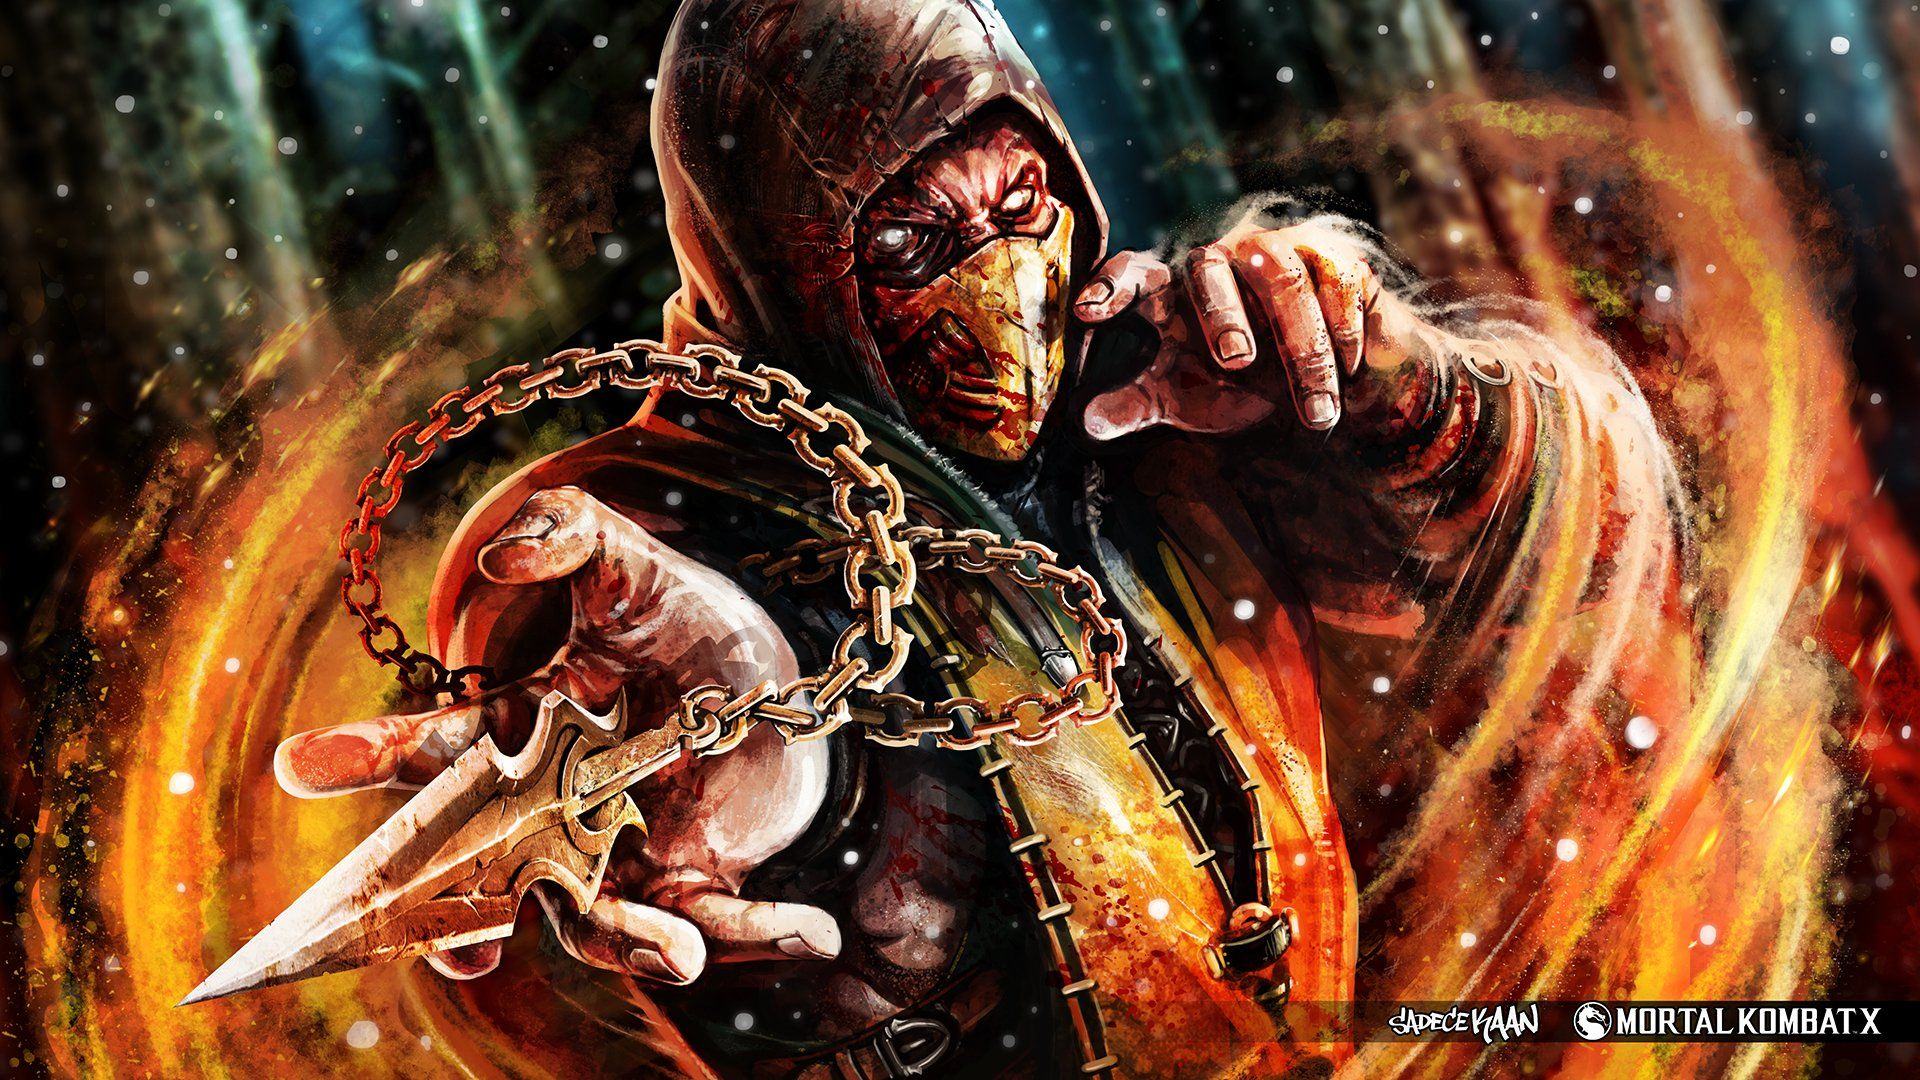 Mortal Kombat X Wallpapers Top Free Mortal Kombat X Backgrounds Wallpaperaccess